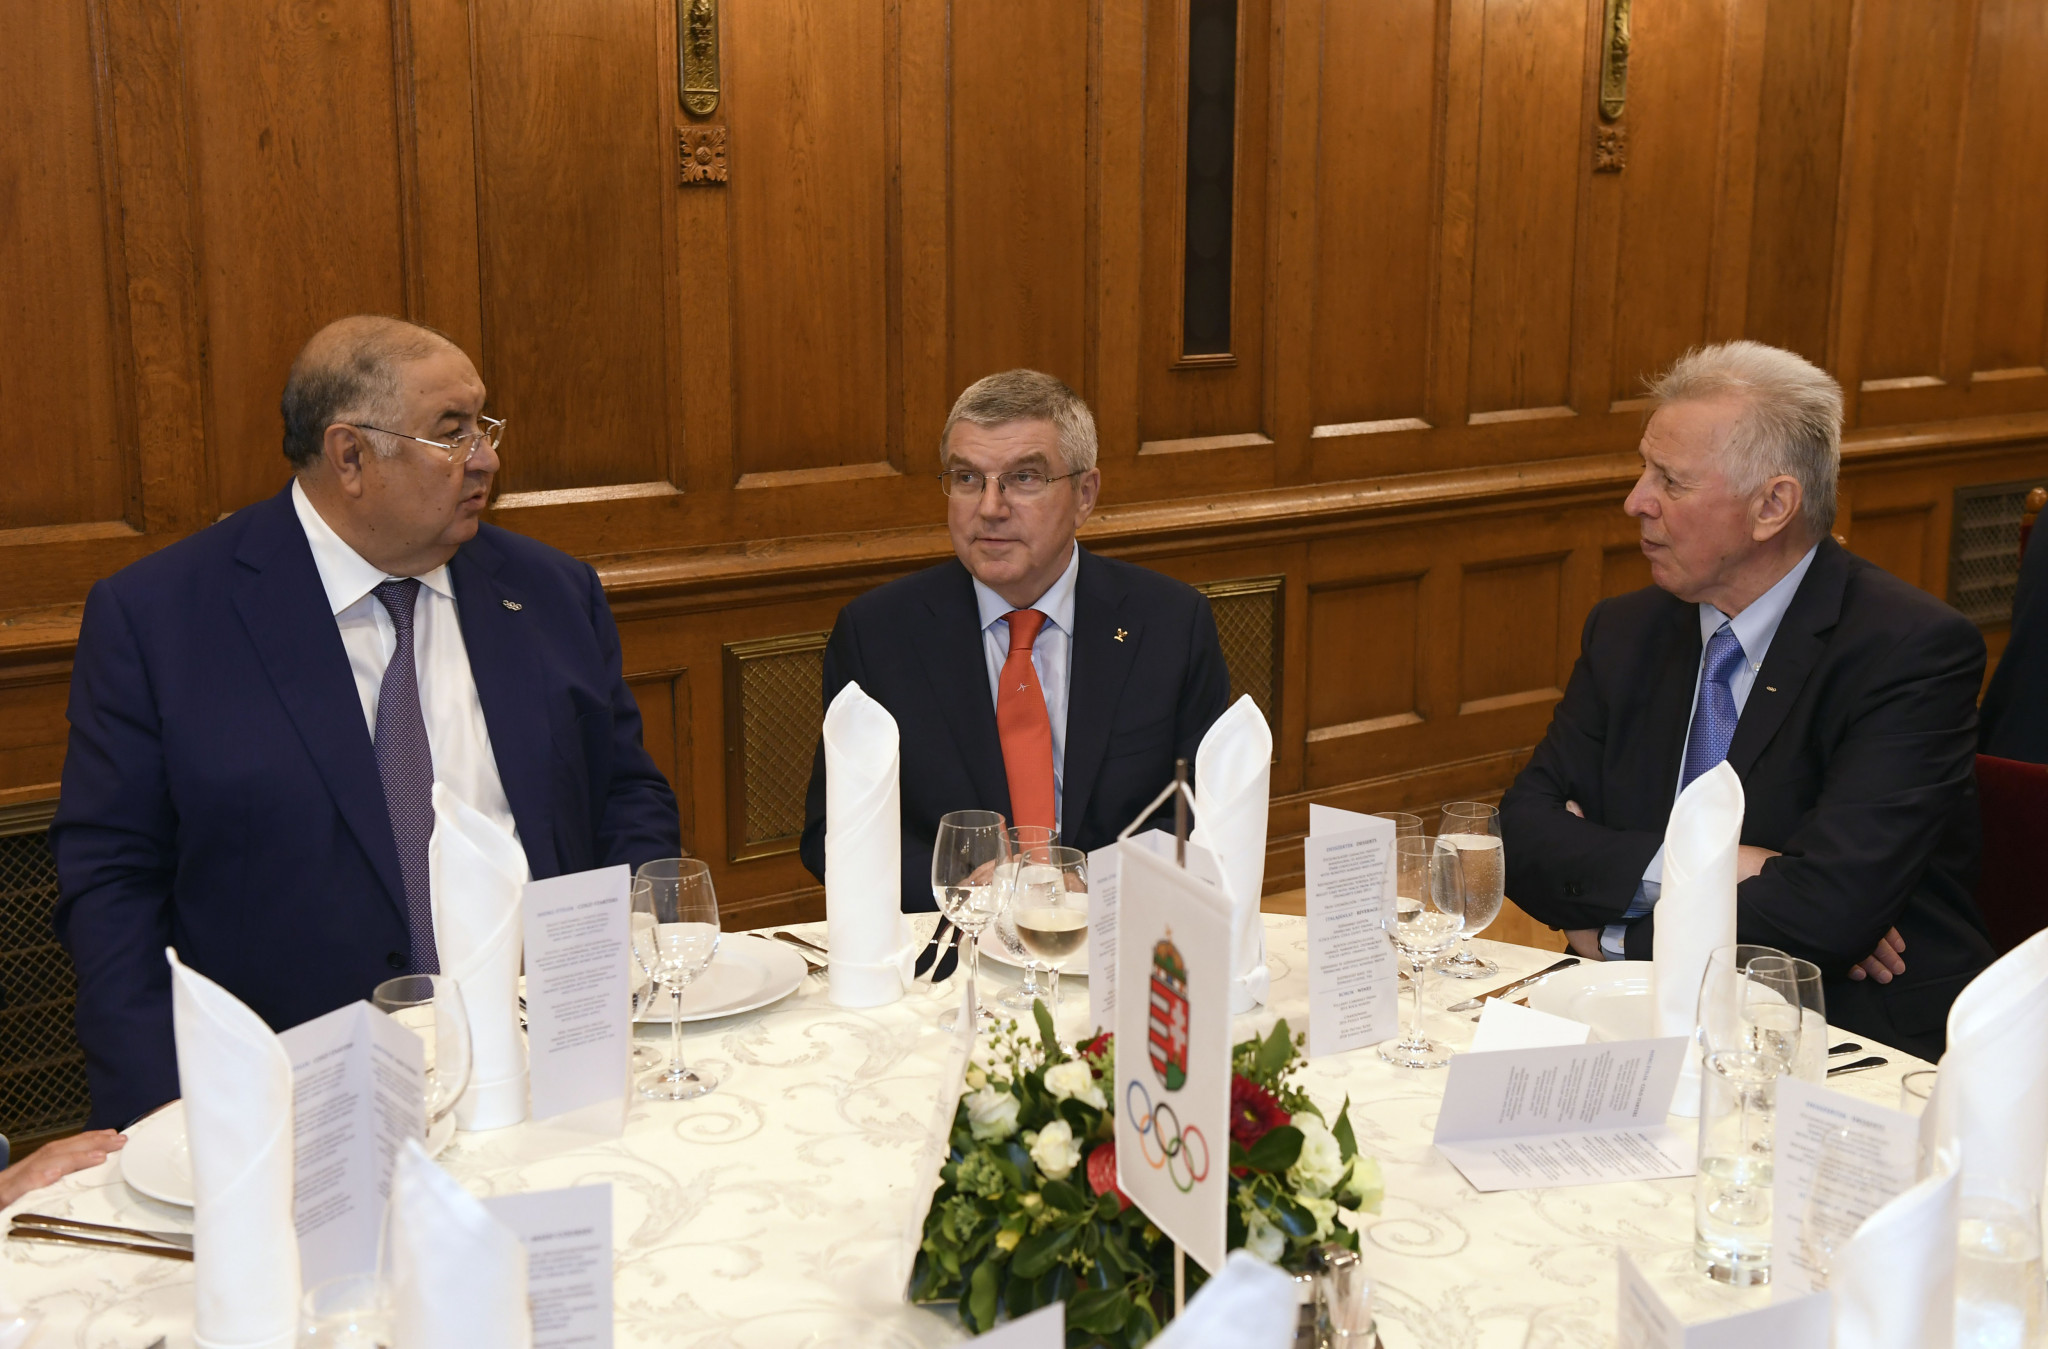 International Fencing Federation President Alisher Usmanov and Hungarian IOC member Pál Schmitt joined Thomas Bach at the reception ©MOB